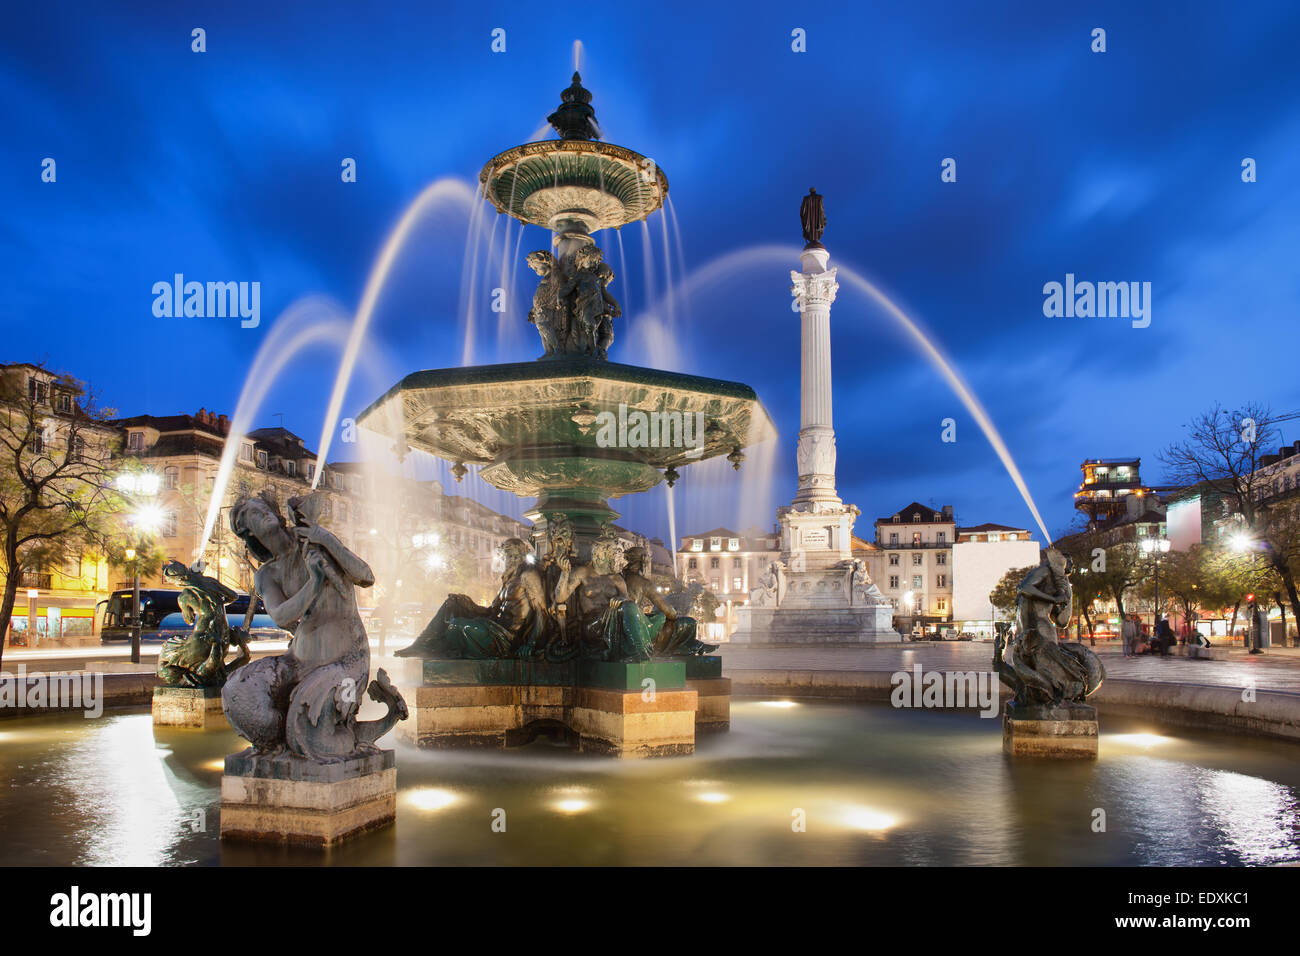 Fountain on Rossio Square at night in Lisbon, Portugal. Baroque style artwork with mythical creatures sculptures. - Stock Image